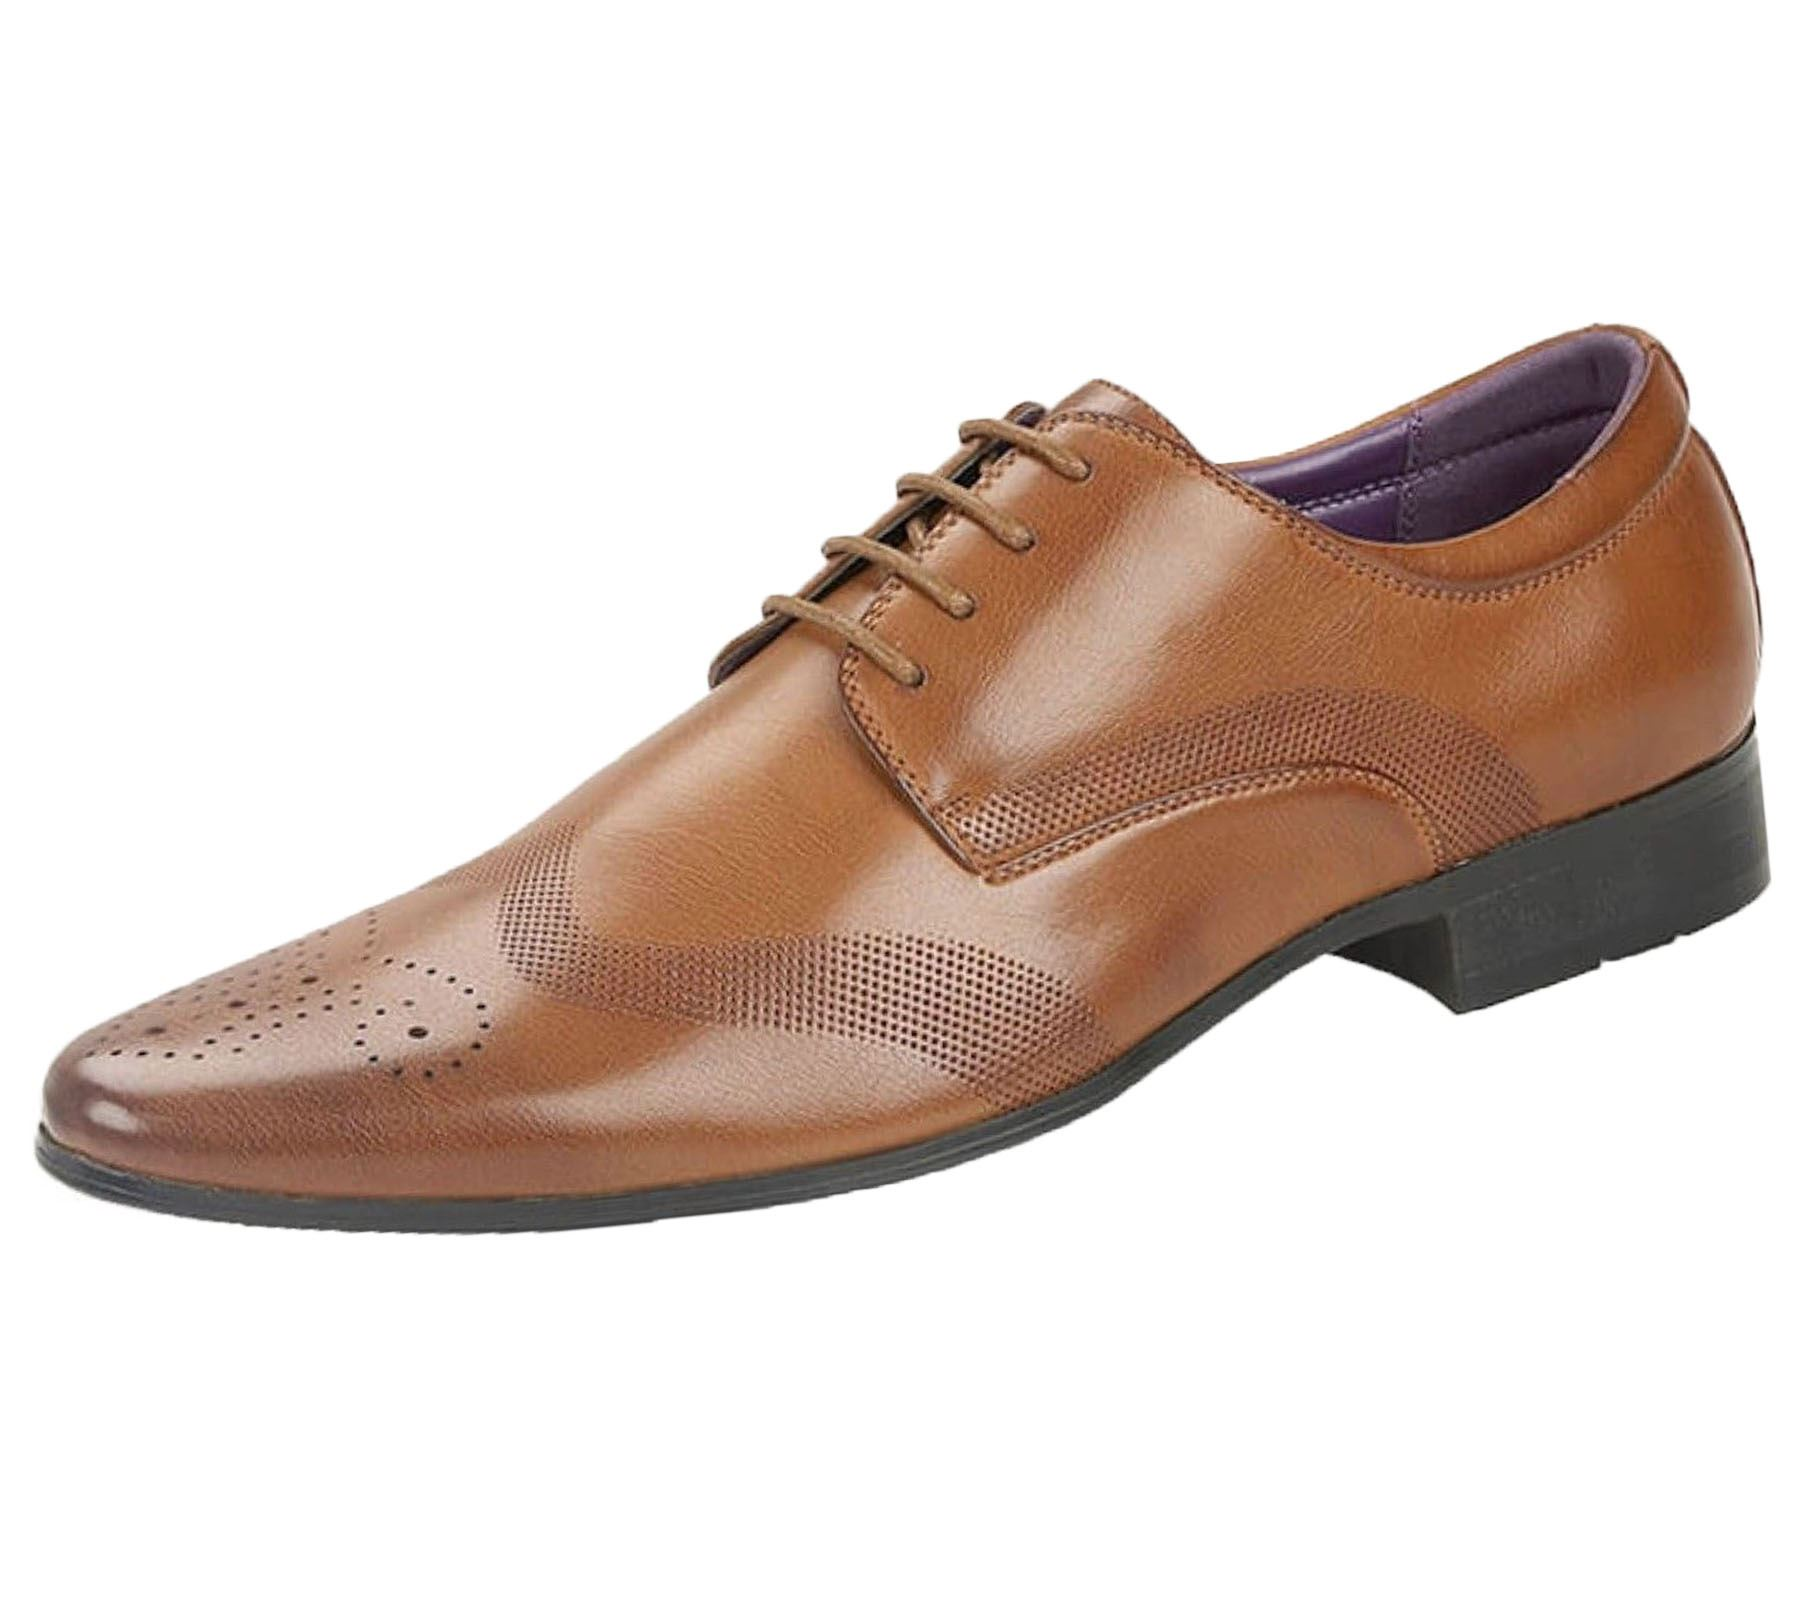 Mens-Brogues-Shoes-Office-Wedding-Formal-Smart-Dress-Shoes-New-Size miniatura 5